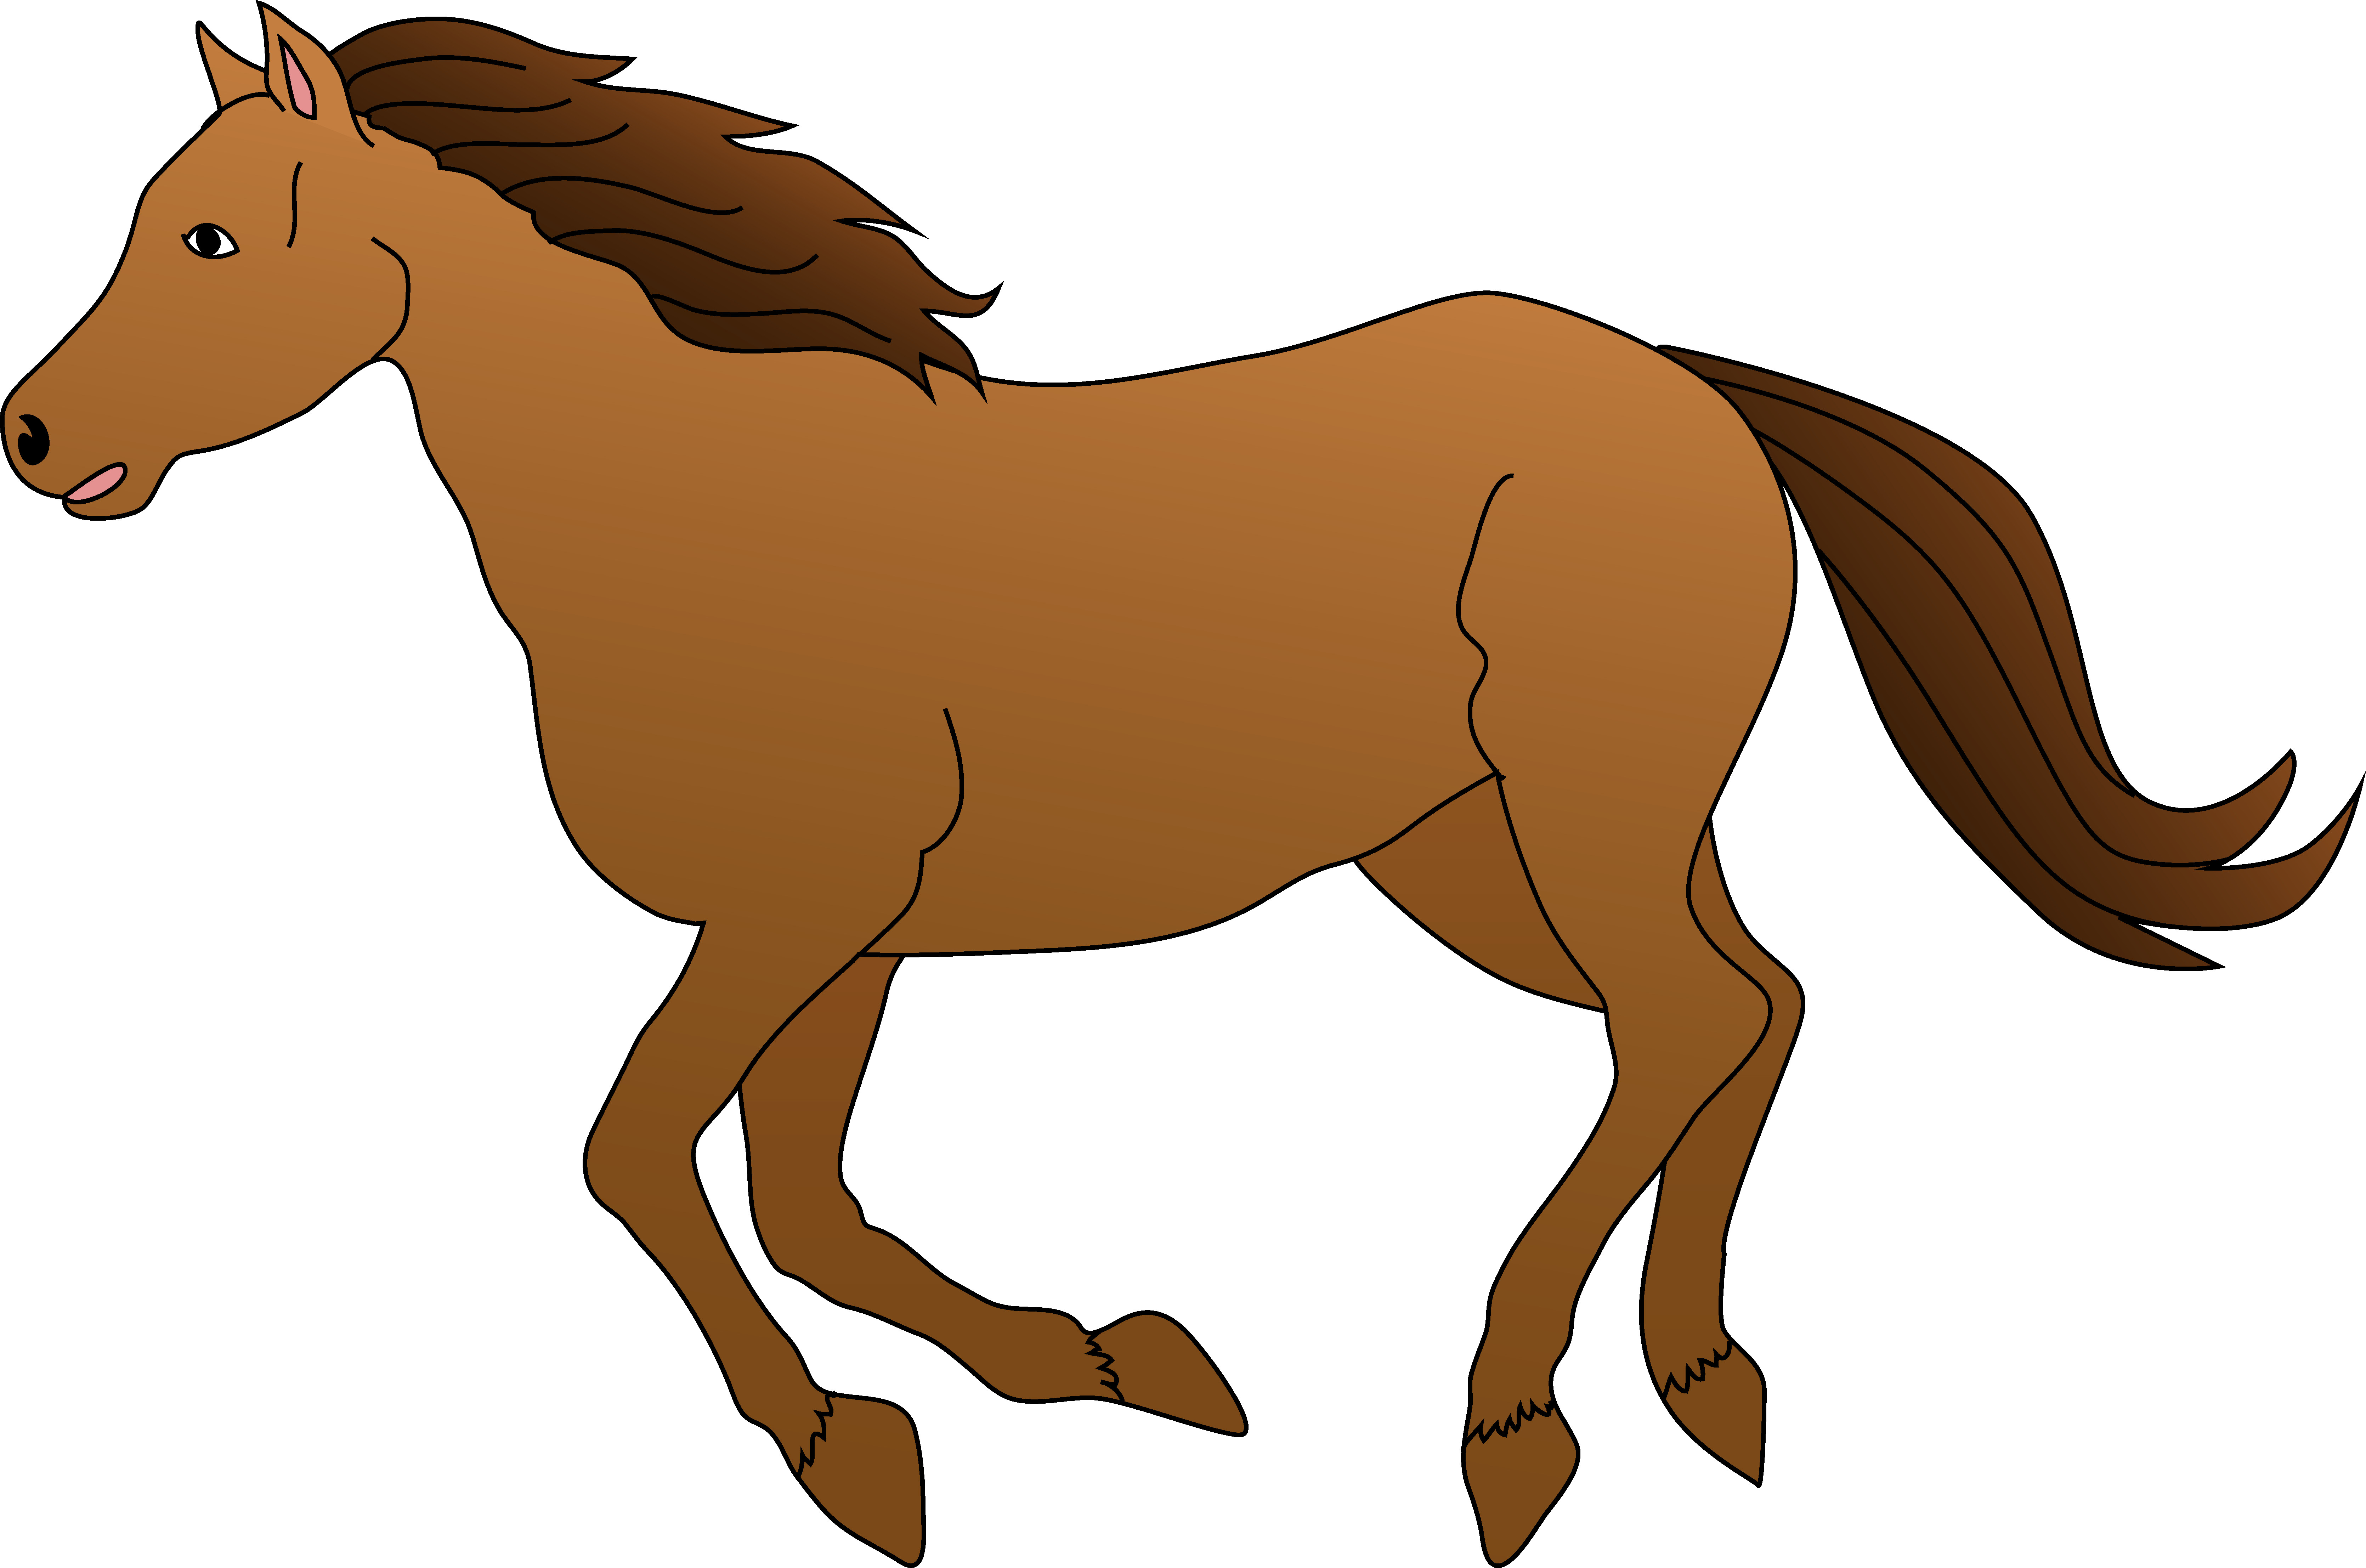 horse and foal clipart at getdrawings com free for personal use rh getdrawings com horse clipart transparent horse clipart pictures